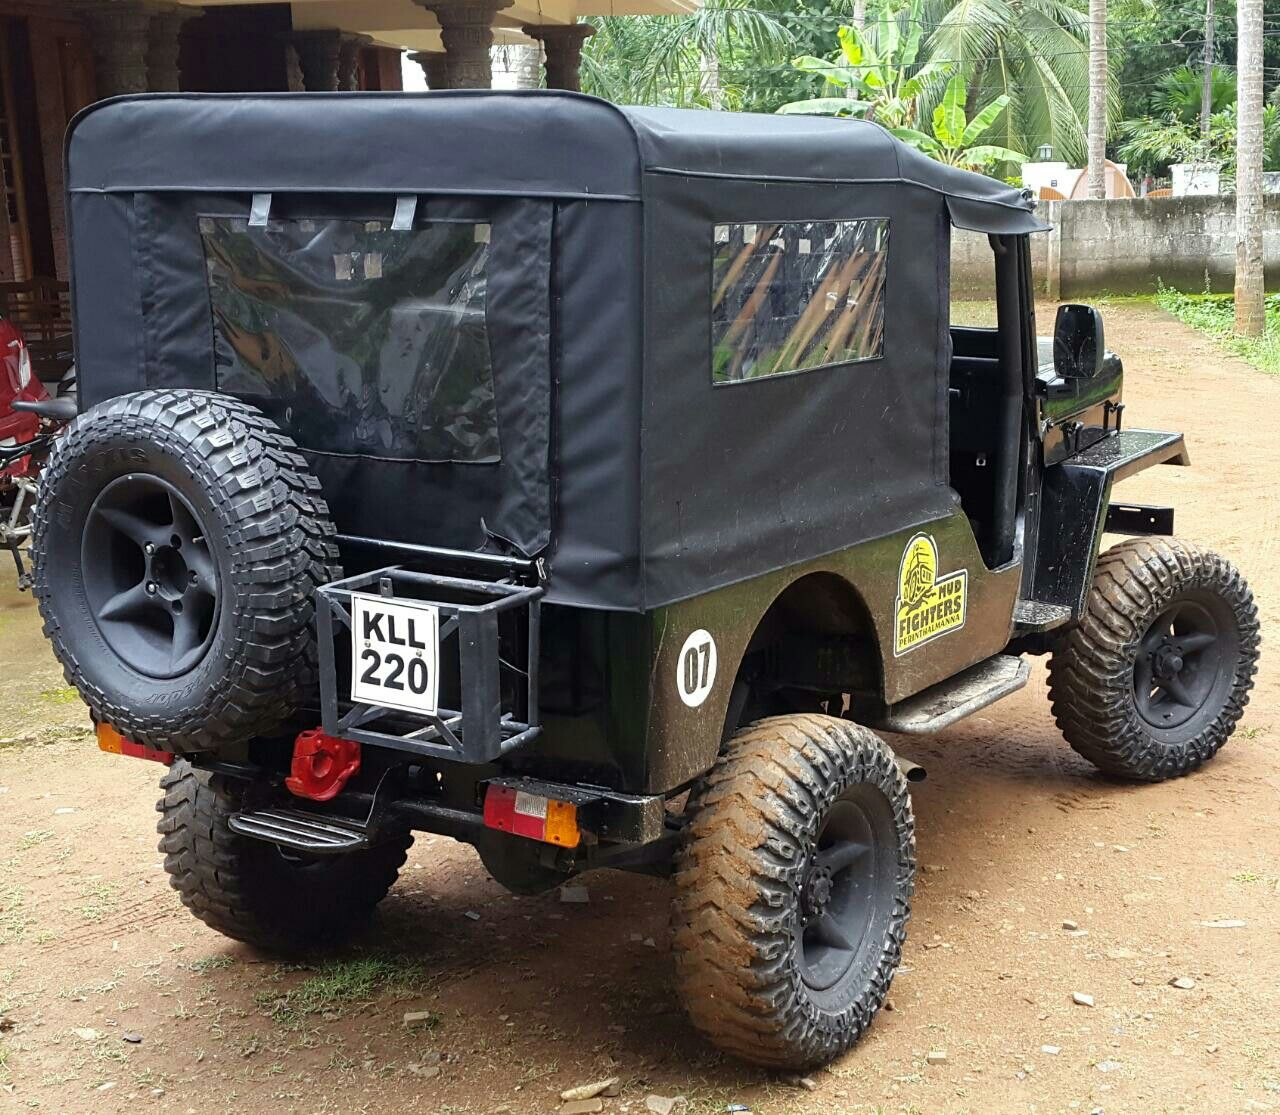 Mahindra Jeep Cj500 4 4 Lifted By Team Mforc Perinthalmanna